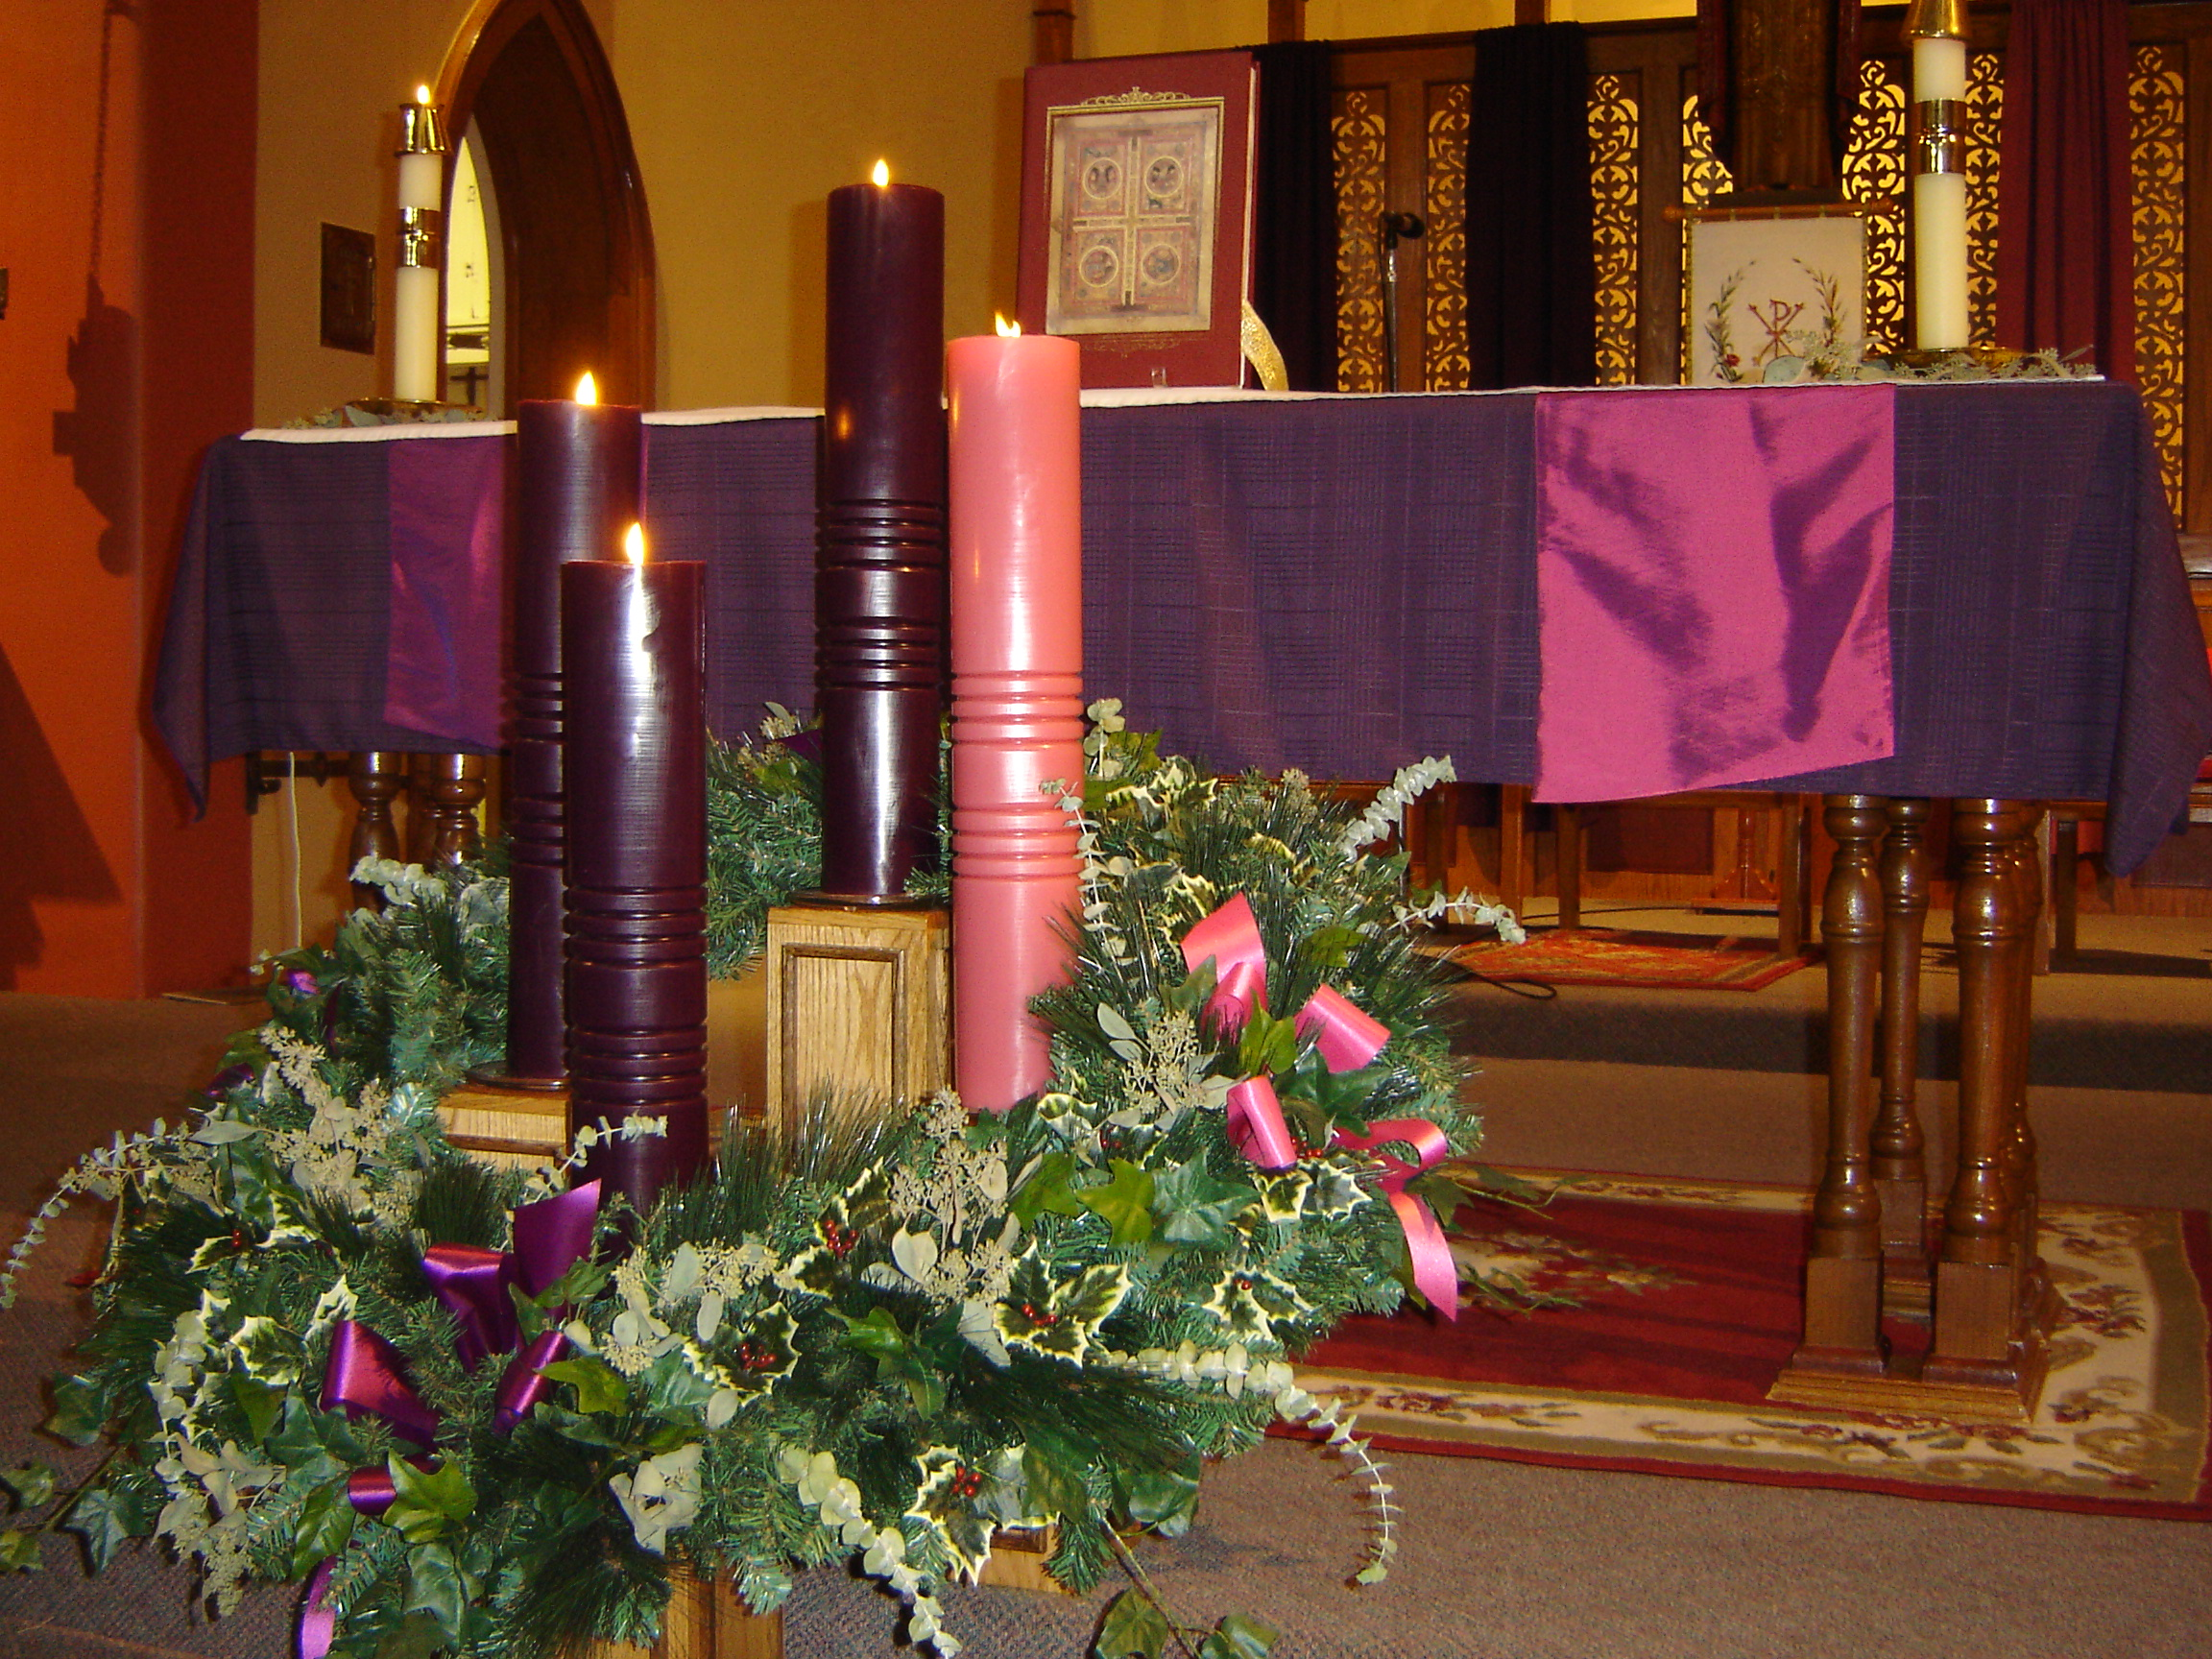 Four weeks before Christmas-Advent